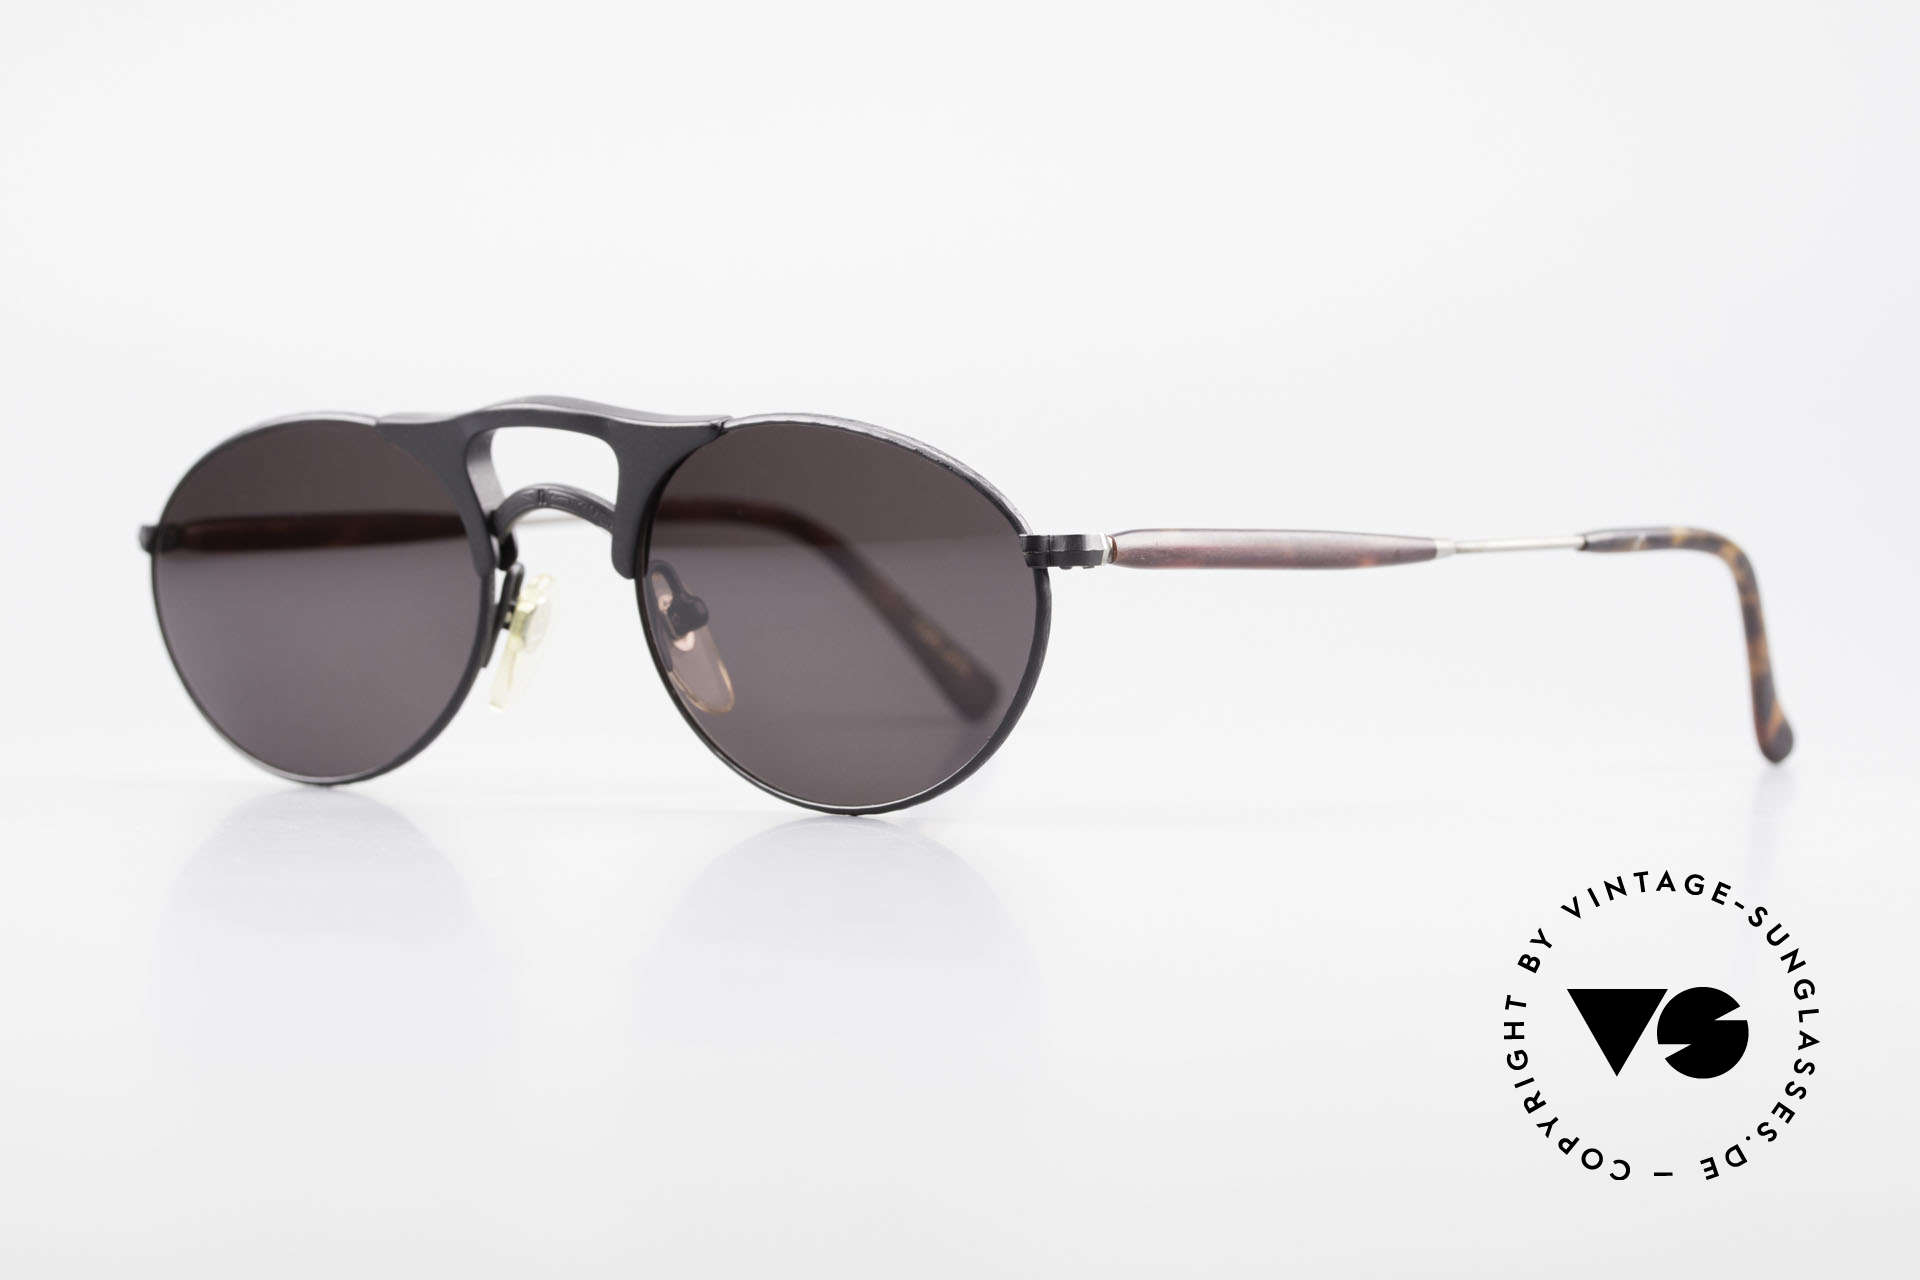 Matsuda 2820 Small Aviator Style Sunglasses, model represents lifestyle & quality awareness, similarly, Made for Men and Women